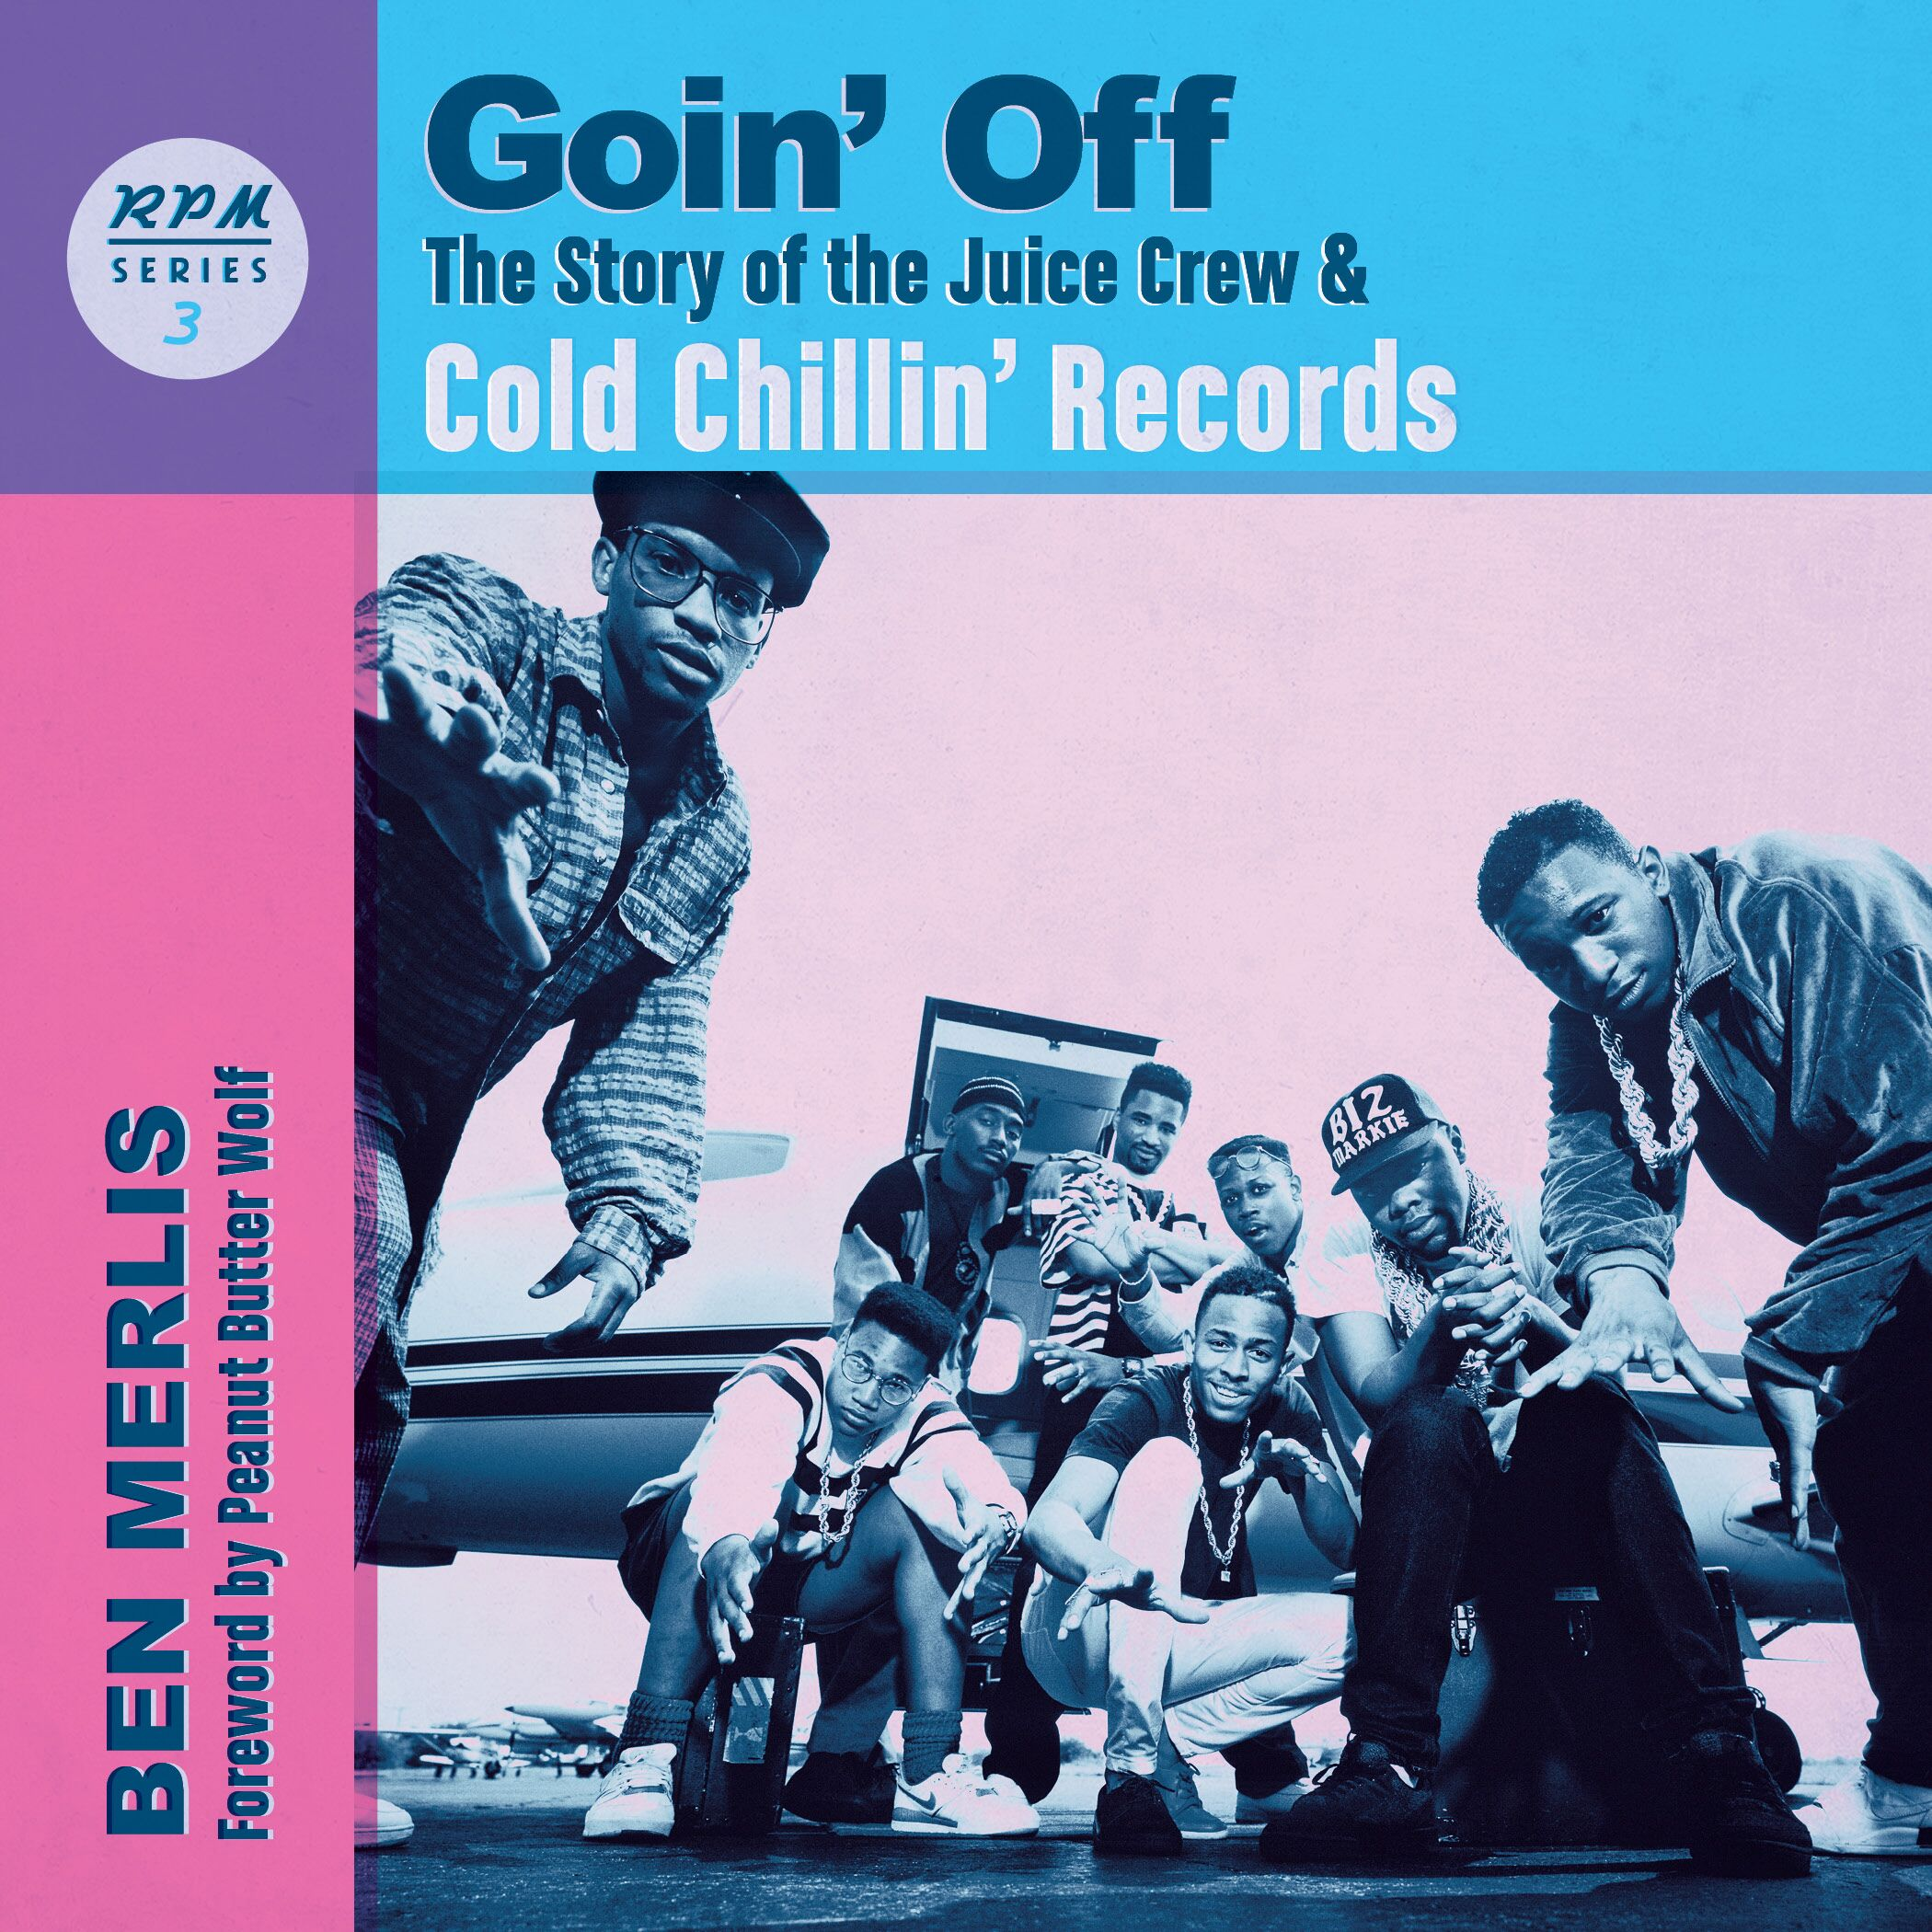 Book Launch: Goin' Off - The Story of the Juice Crew & Cold Chillin' Records by Ben Merlis in conversation with Masta Ace